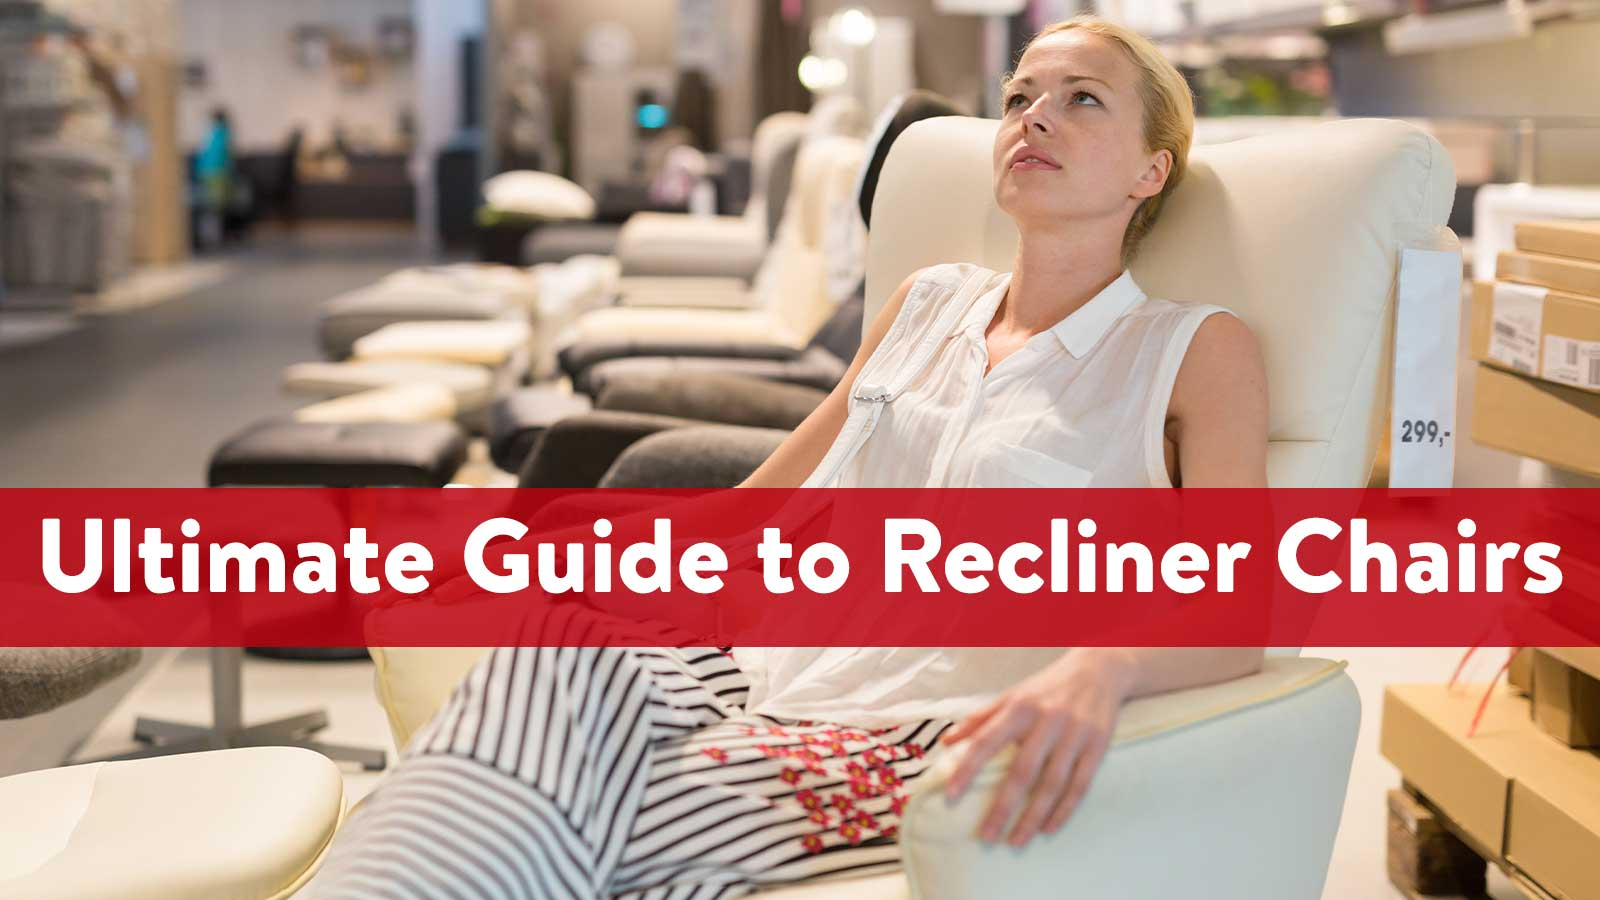 The Ultimate Guide to Recliner Chairs